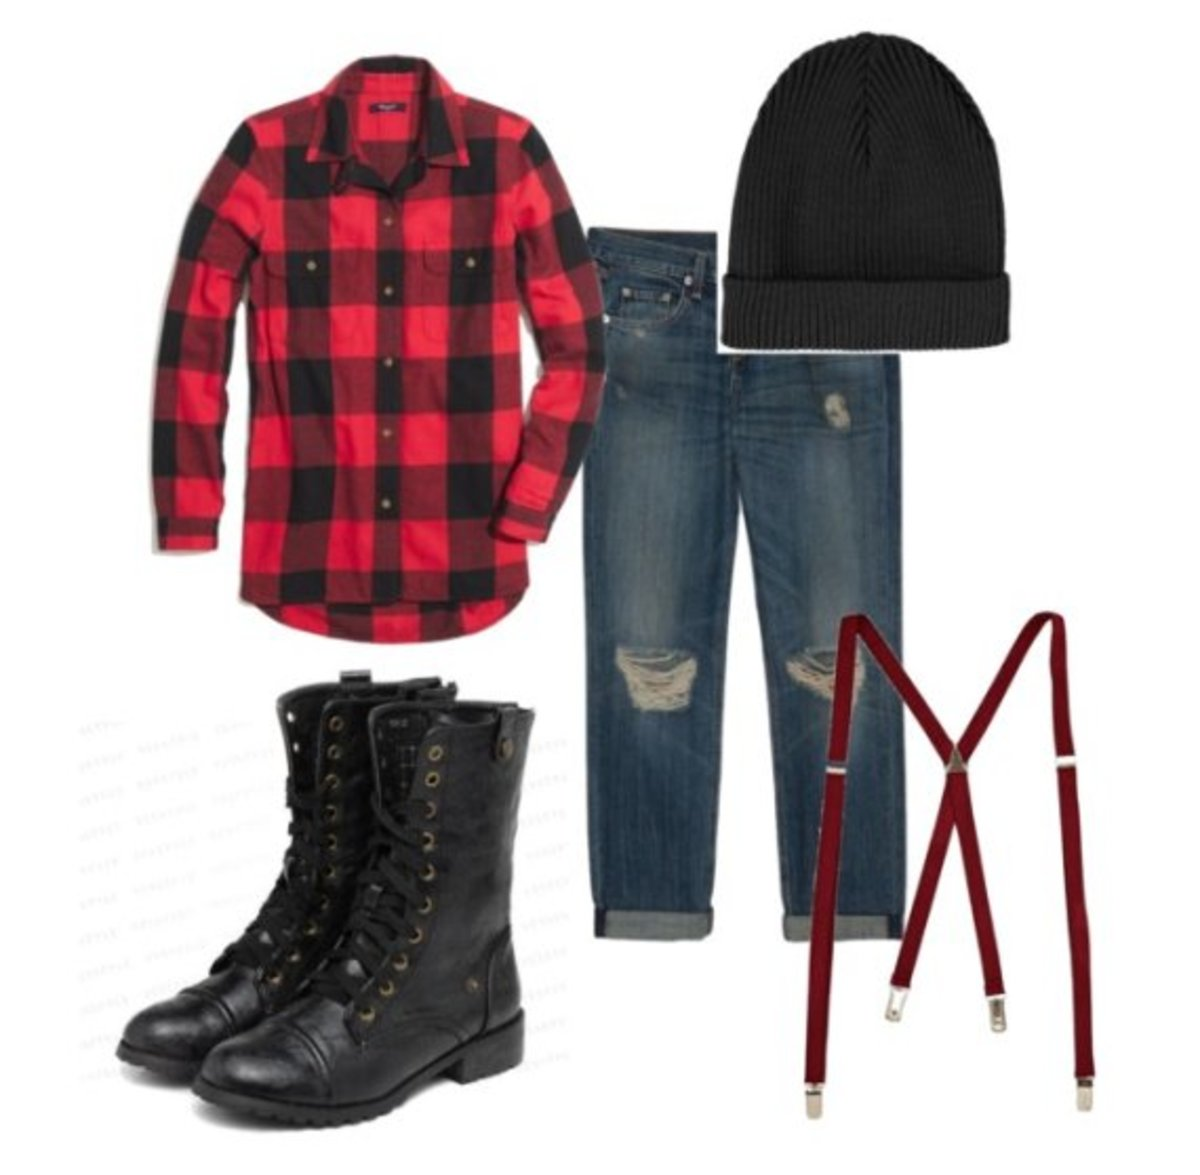 Here's what you will need to put together a lumberjack costume for Halloween